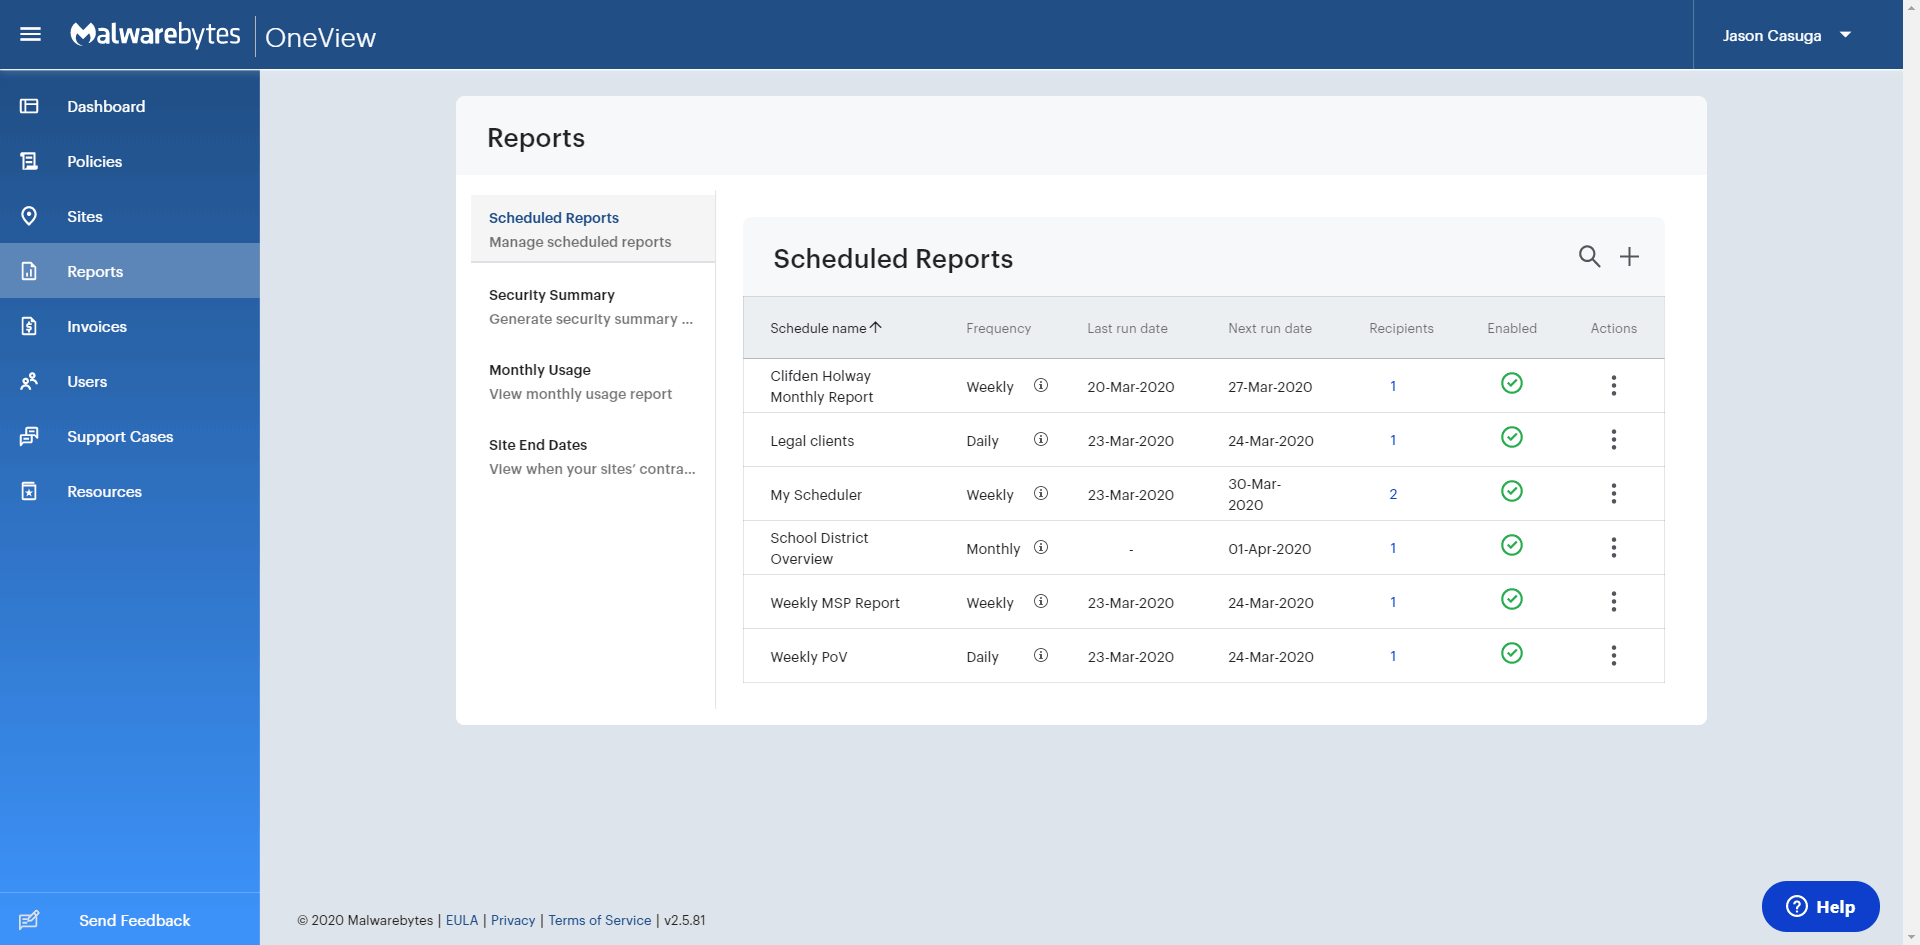 OneView dashboard displaying monthly usage of reports and site end dates